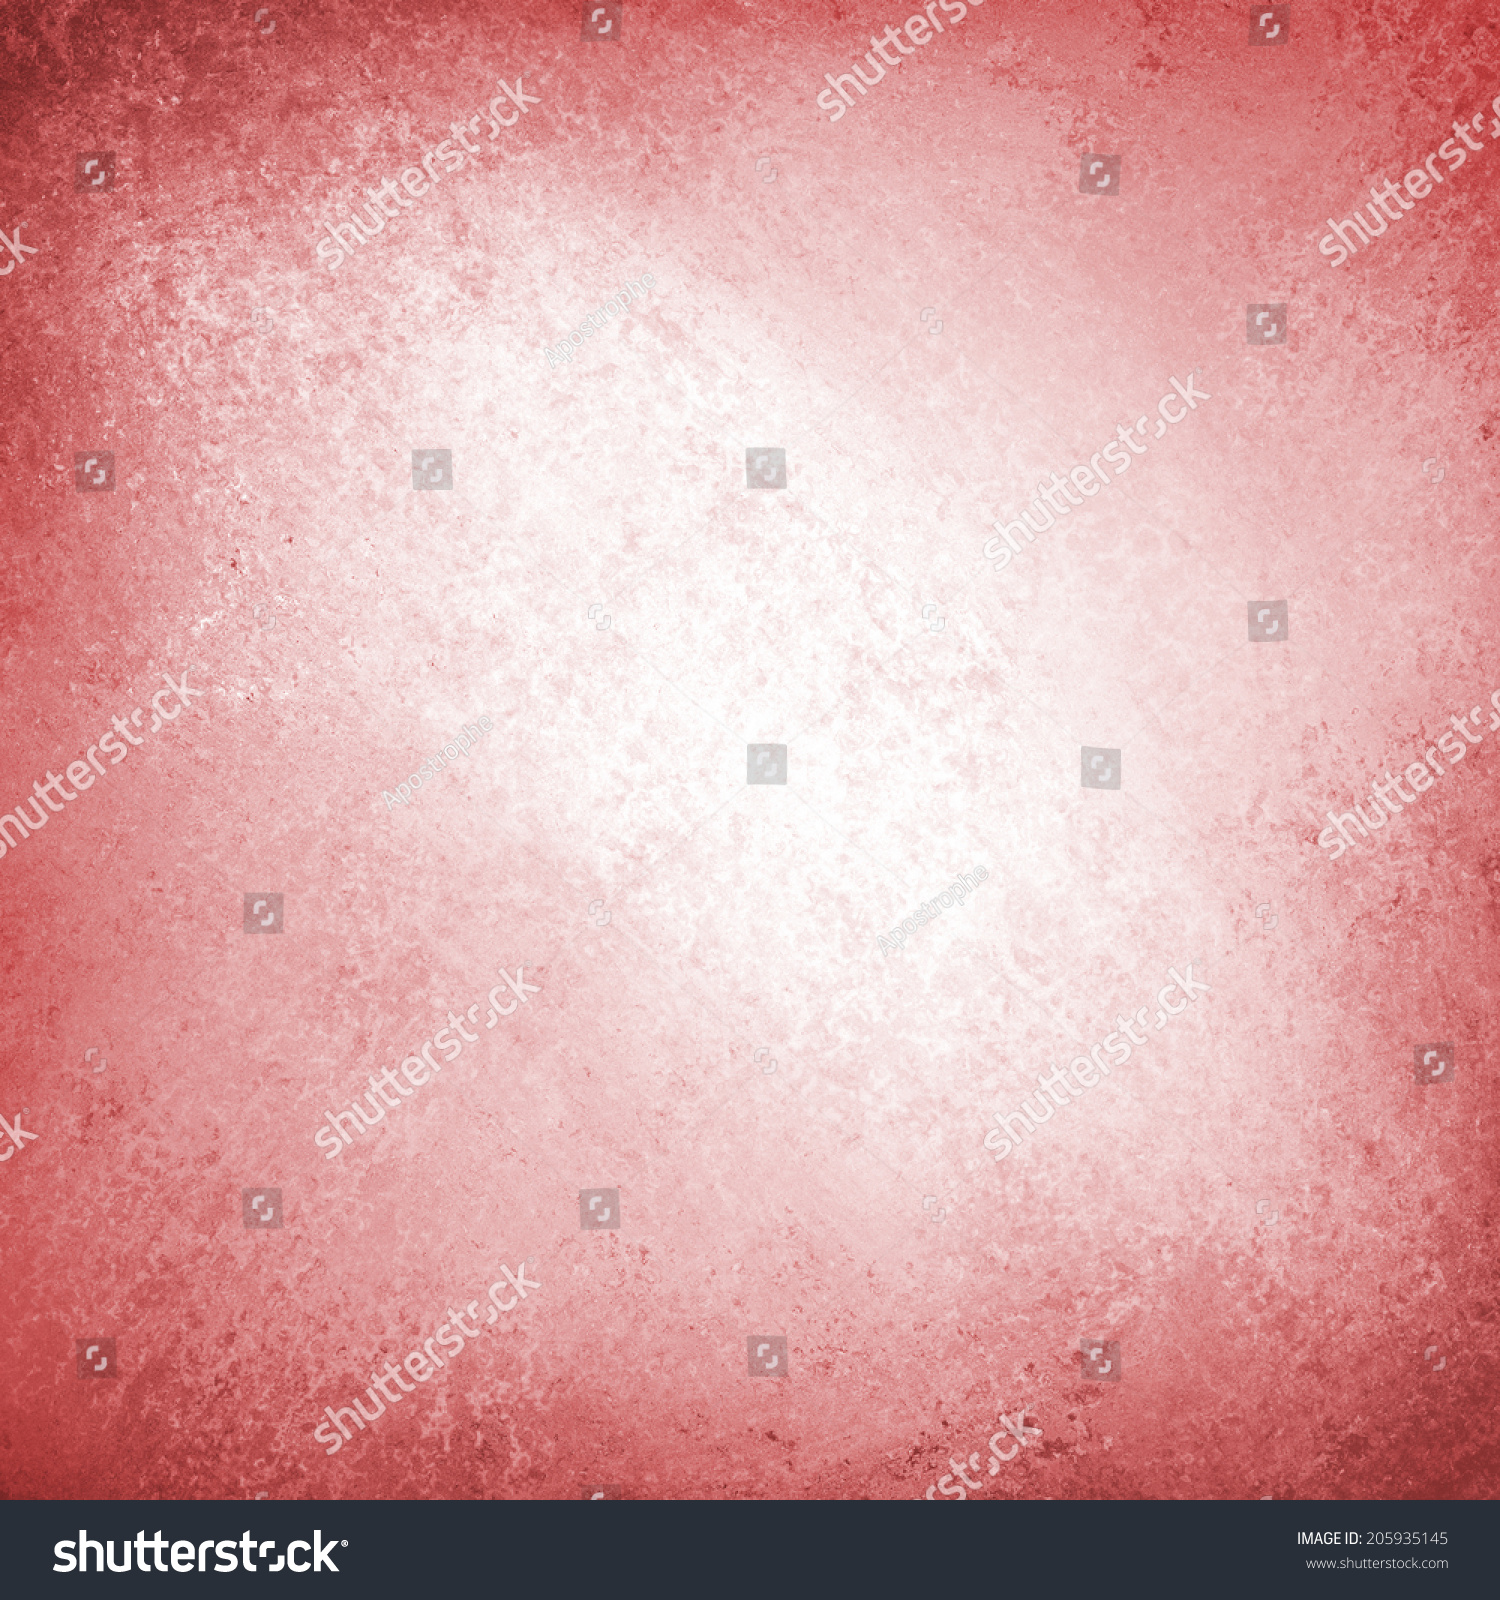 Bright Pink Paint Abstract Red Background White Center Design Stock Illustration